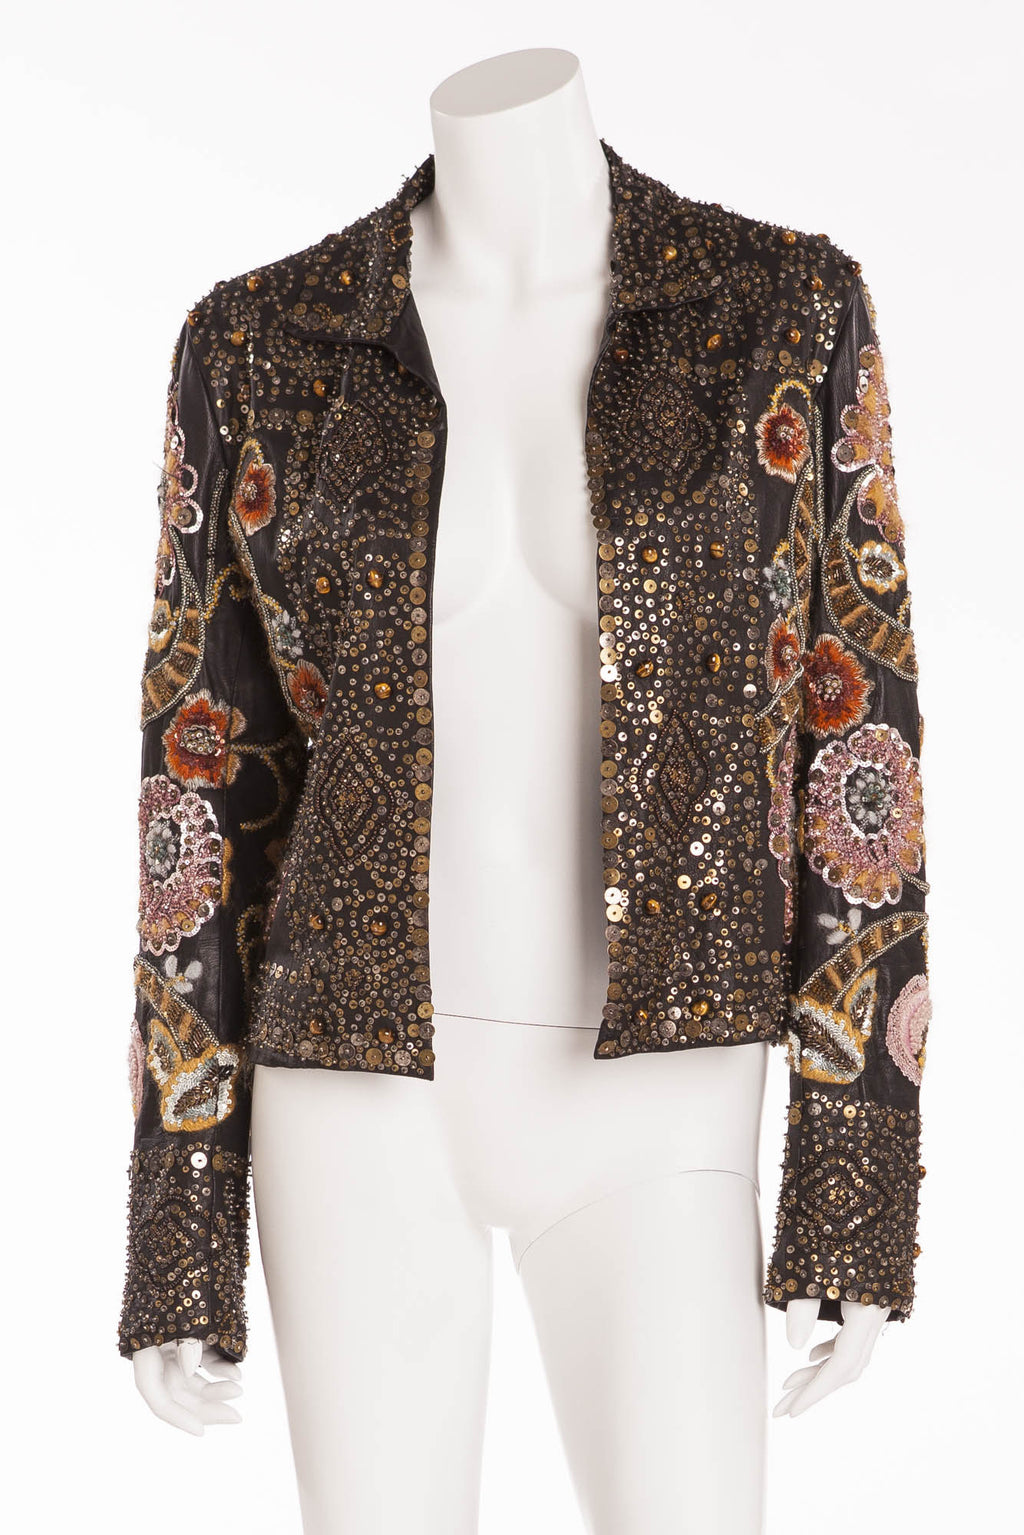 Oscar De La Renta - Hand Sewn Embroidered Sequence, Beads, Metal, and Tiger Eye Stone Jacket - US 6